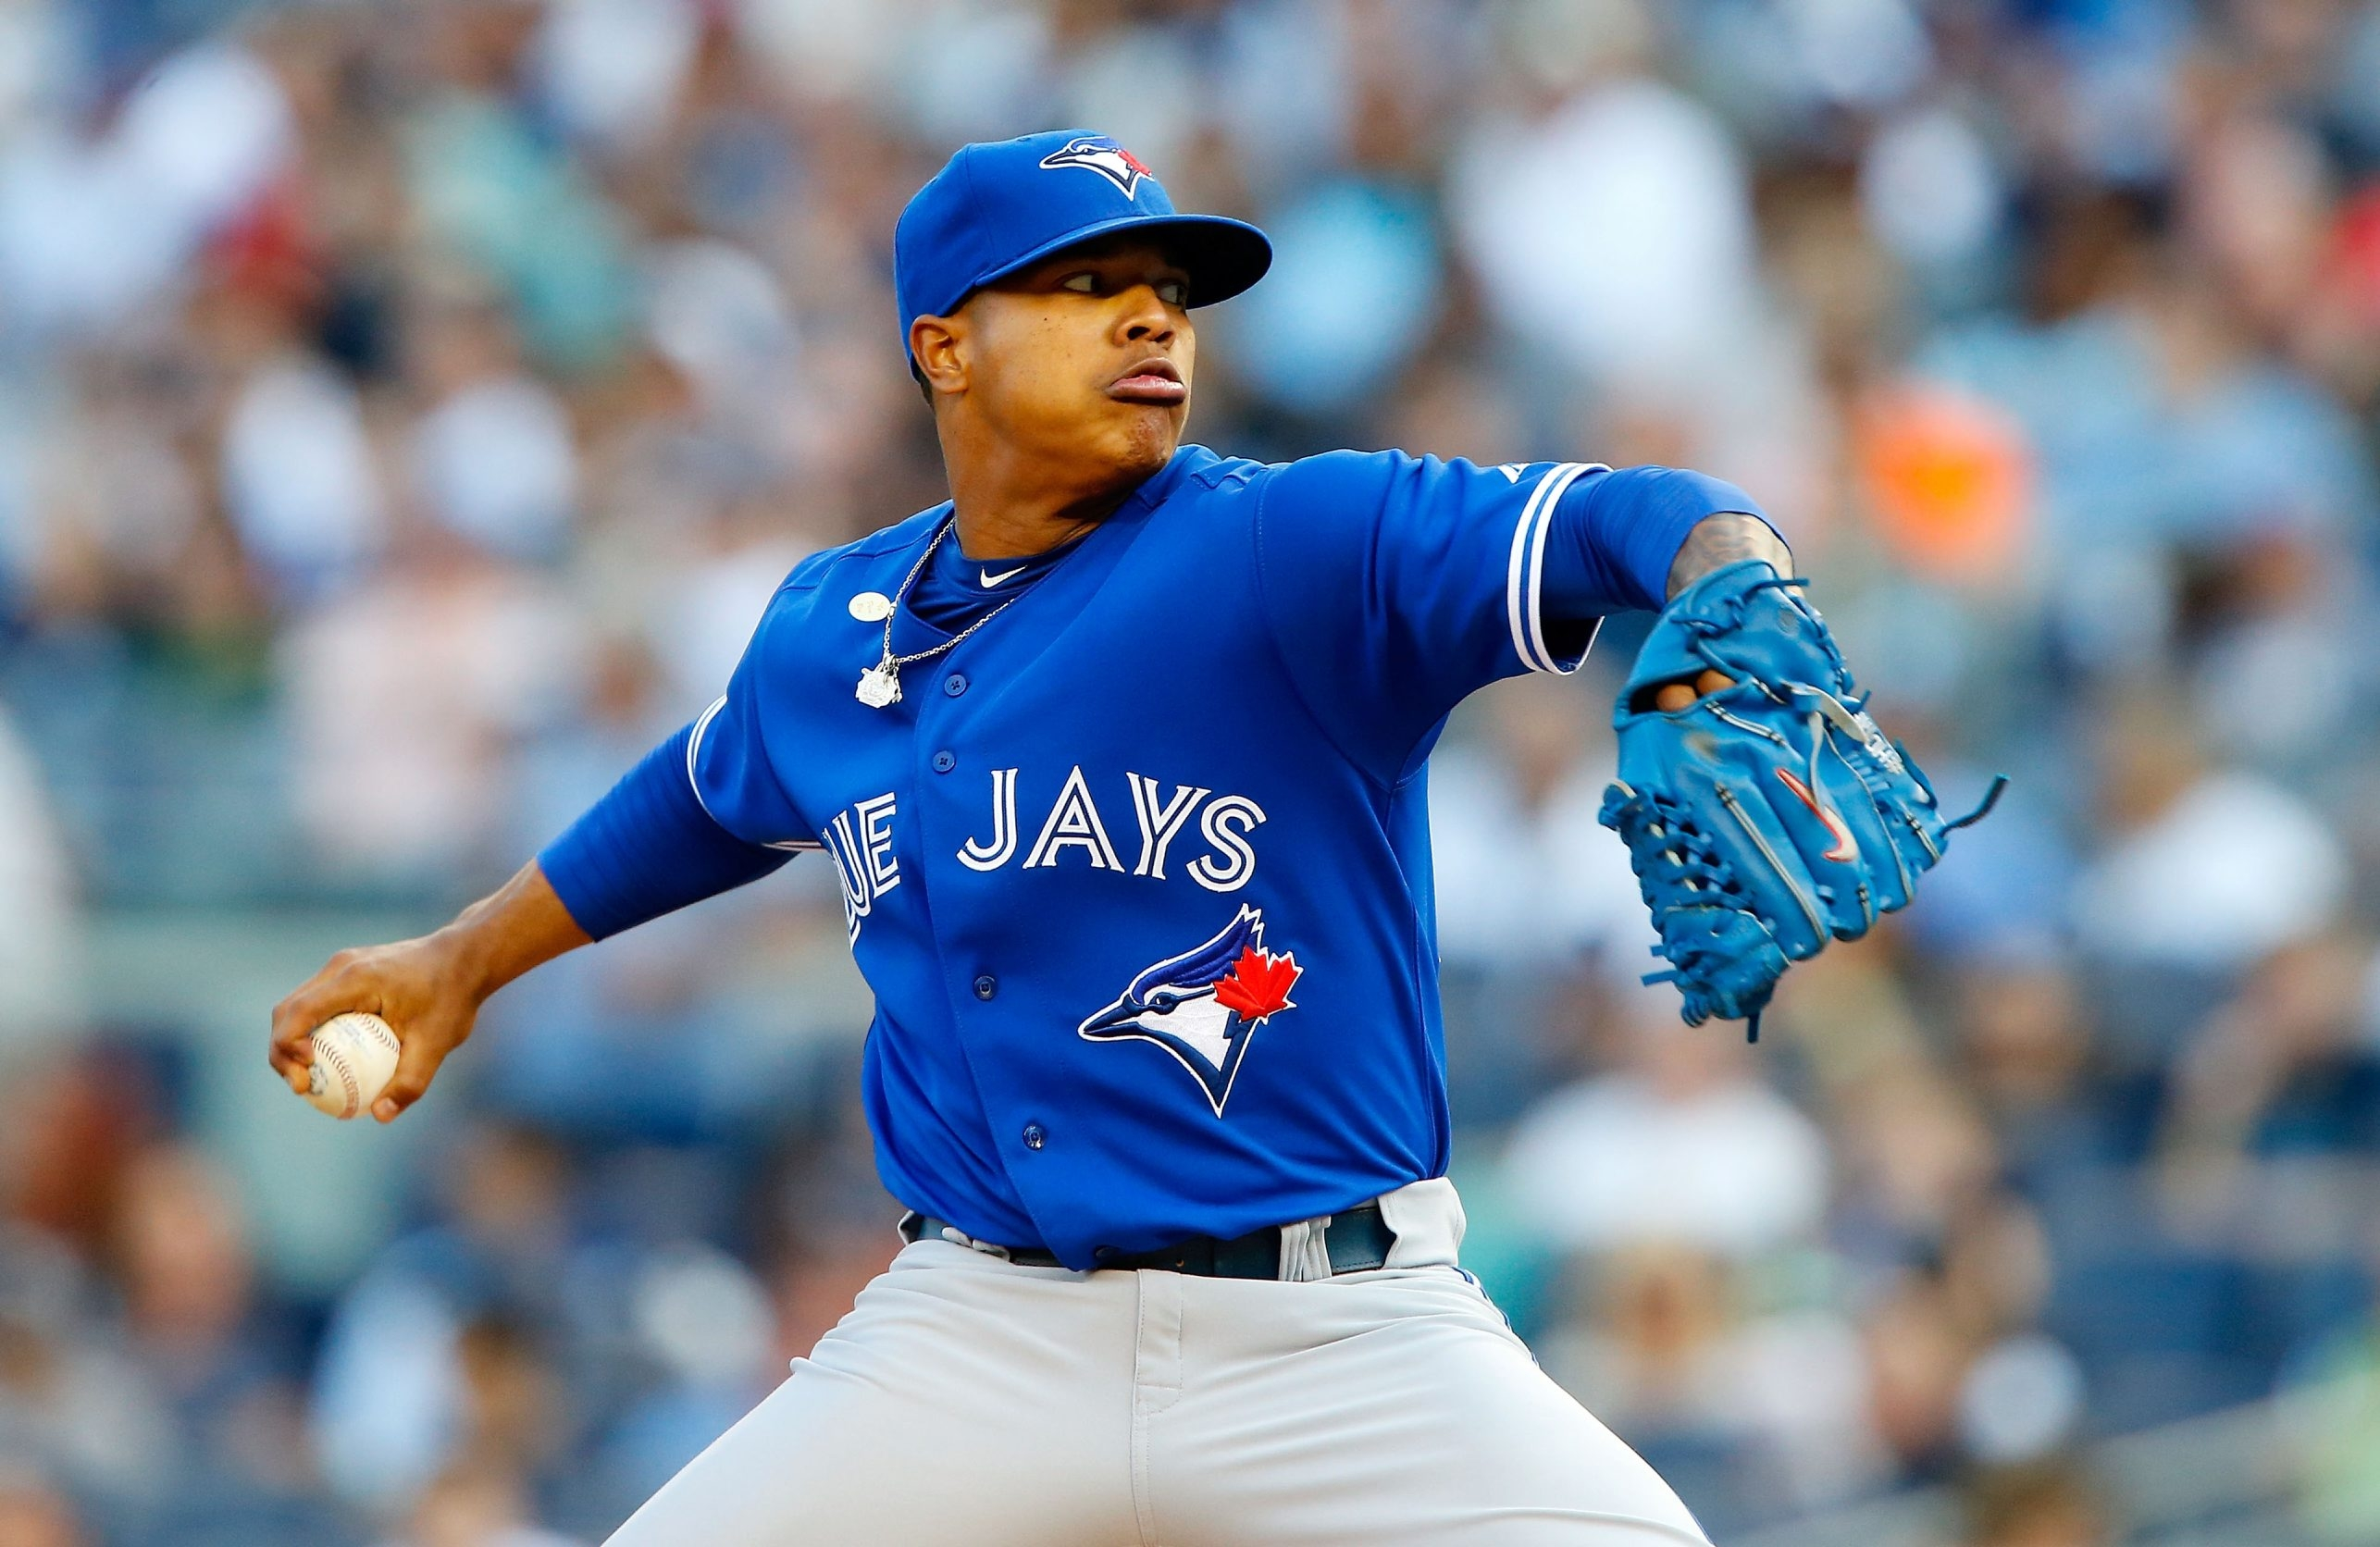 The Blue Jays are reliant on starting pitcher Marcus Stroman despite his inexperience. (Getty Images)